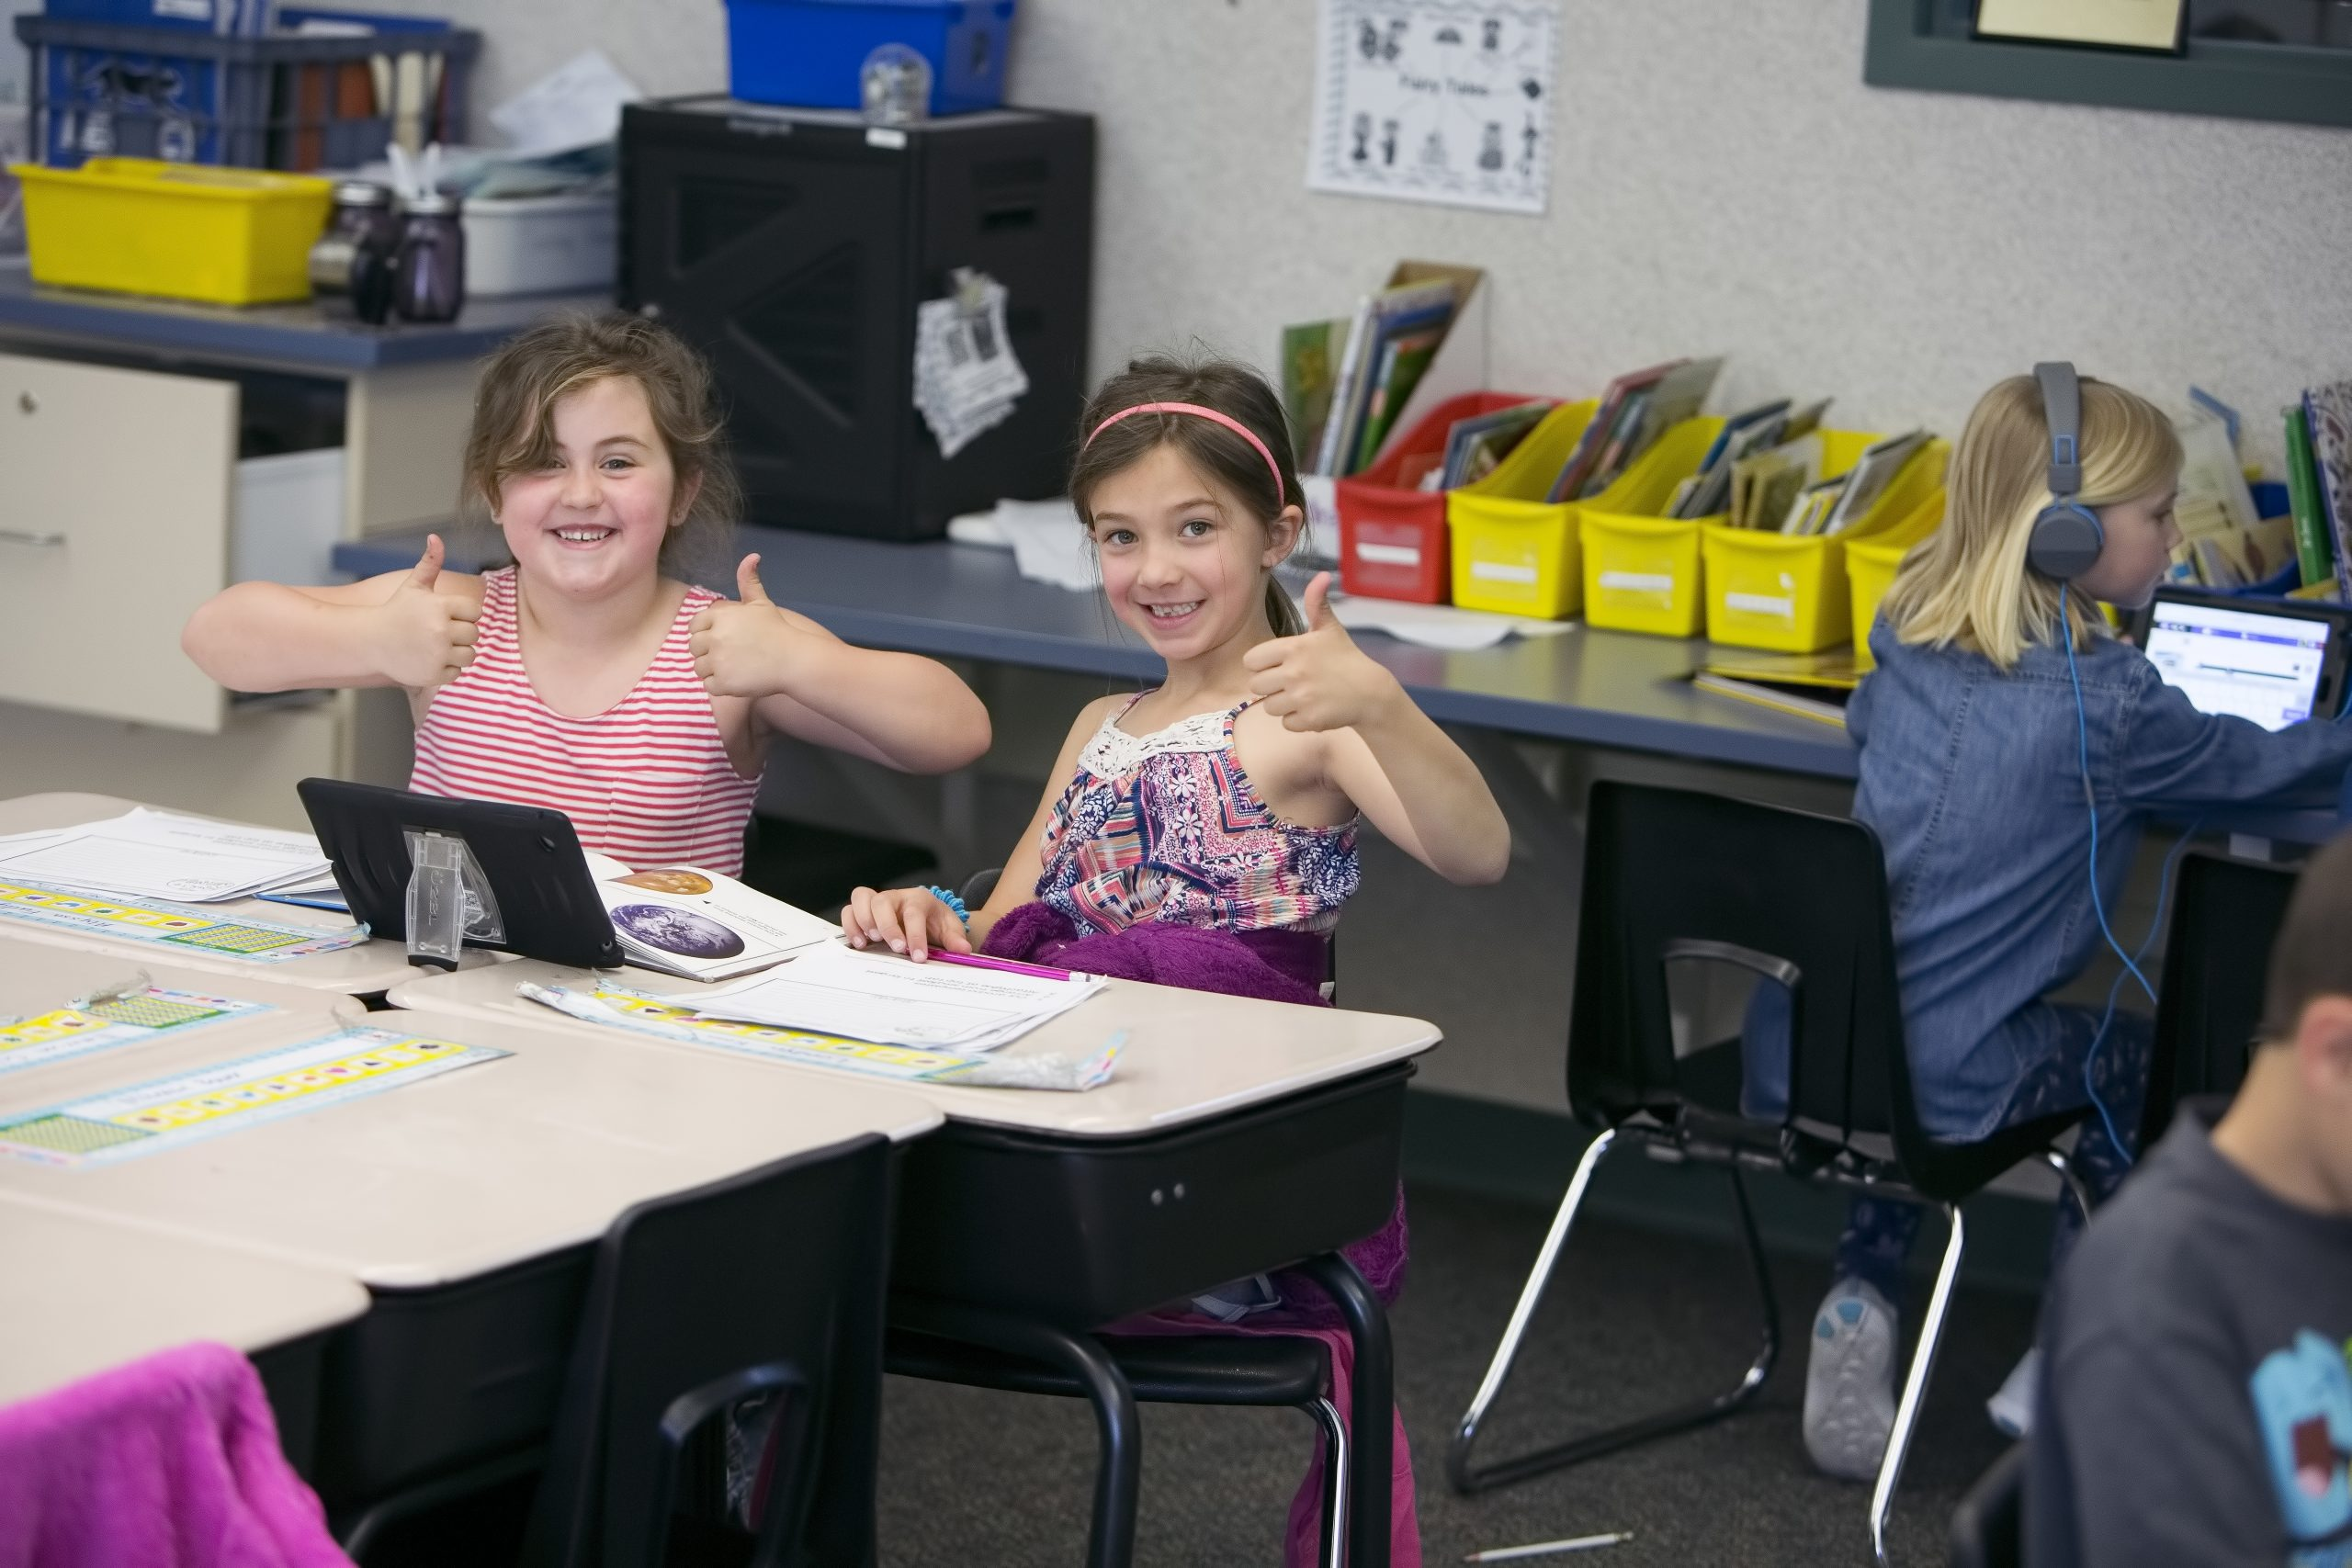 Two female students giving a thumbs up as they work collaboratively.